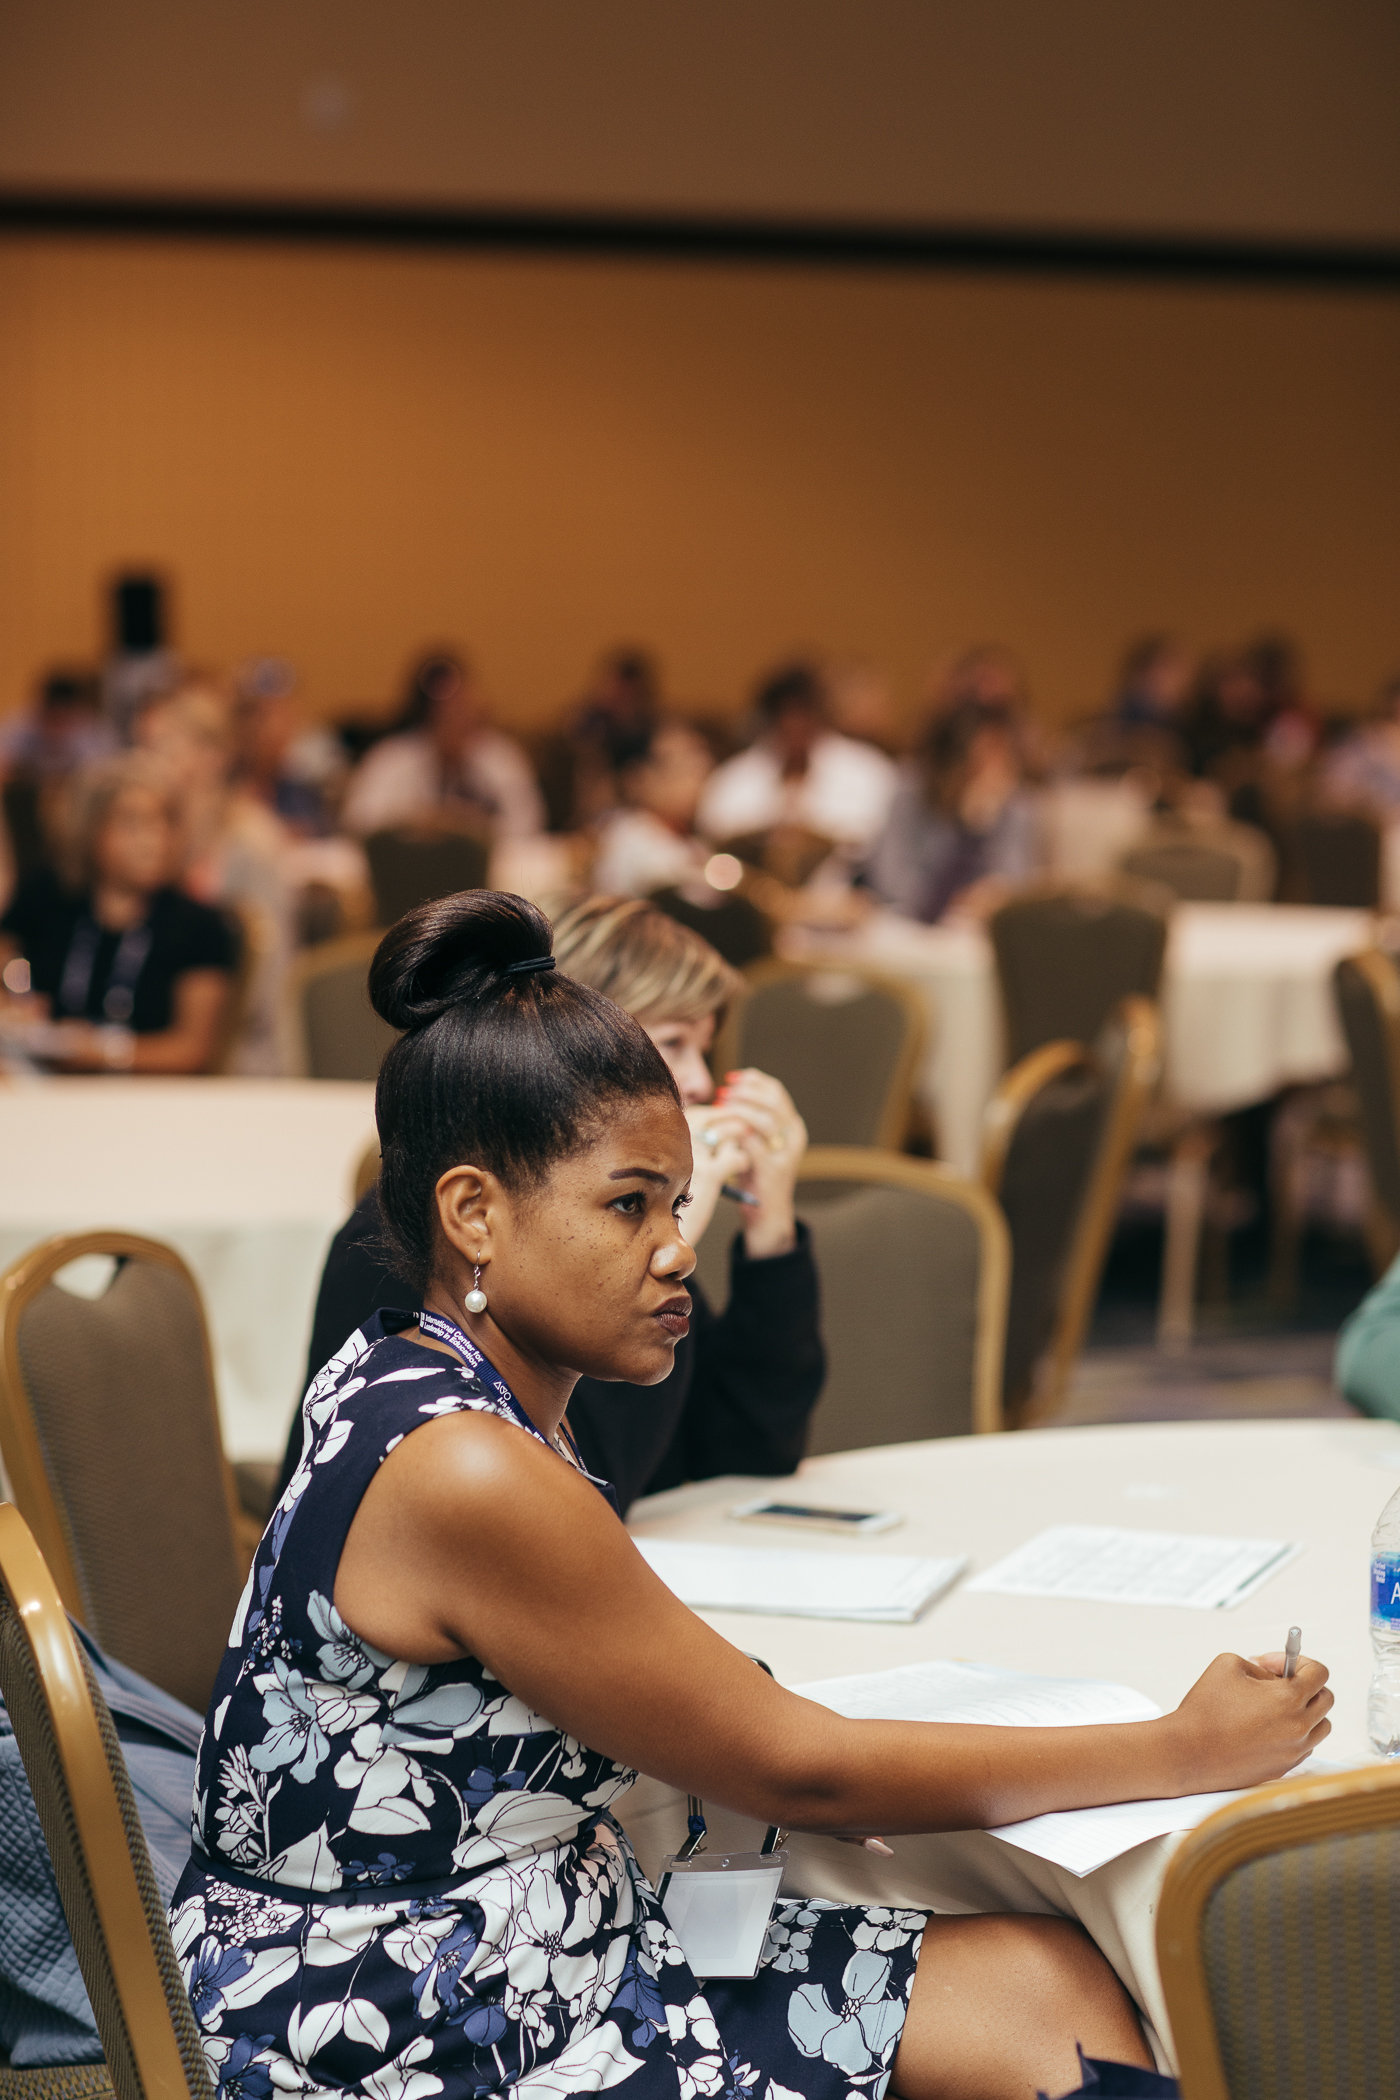 live event commercial photography brand storytelling for education florida conference photographer ©2018abigailbobophotography-111.jpg